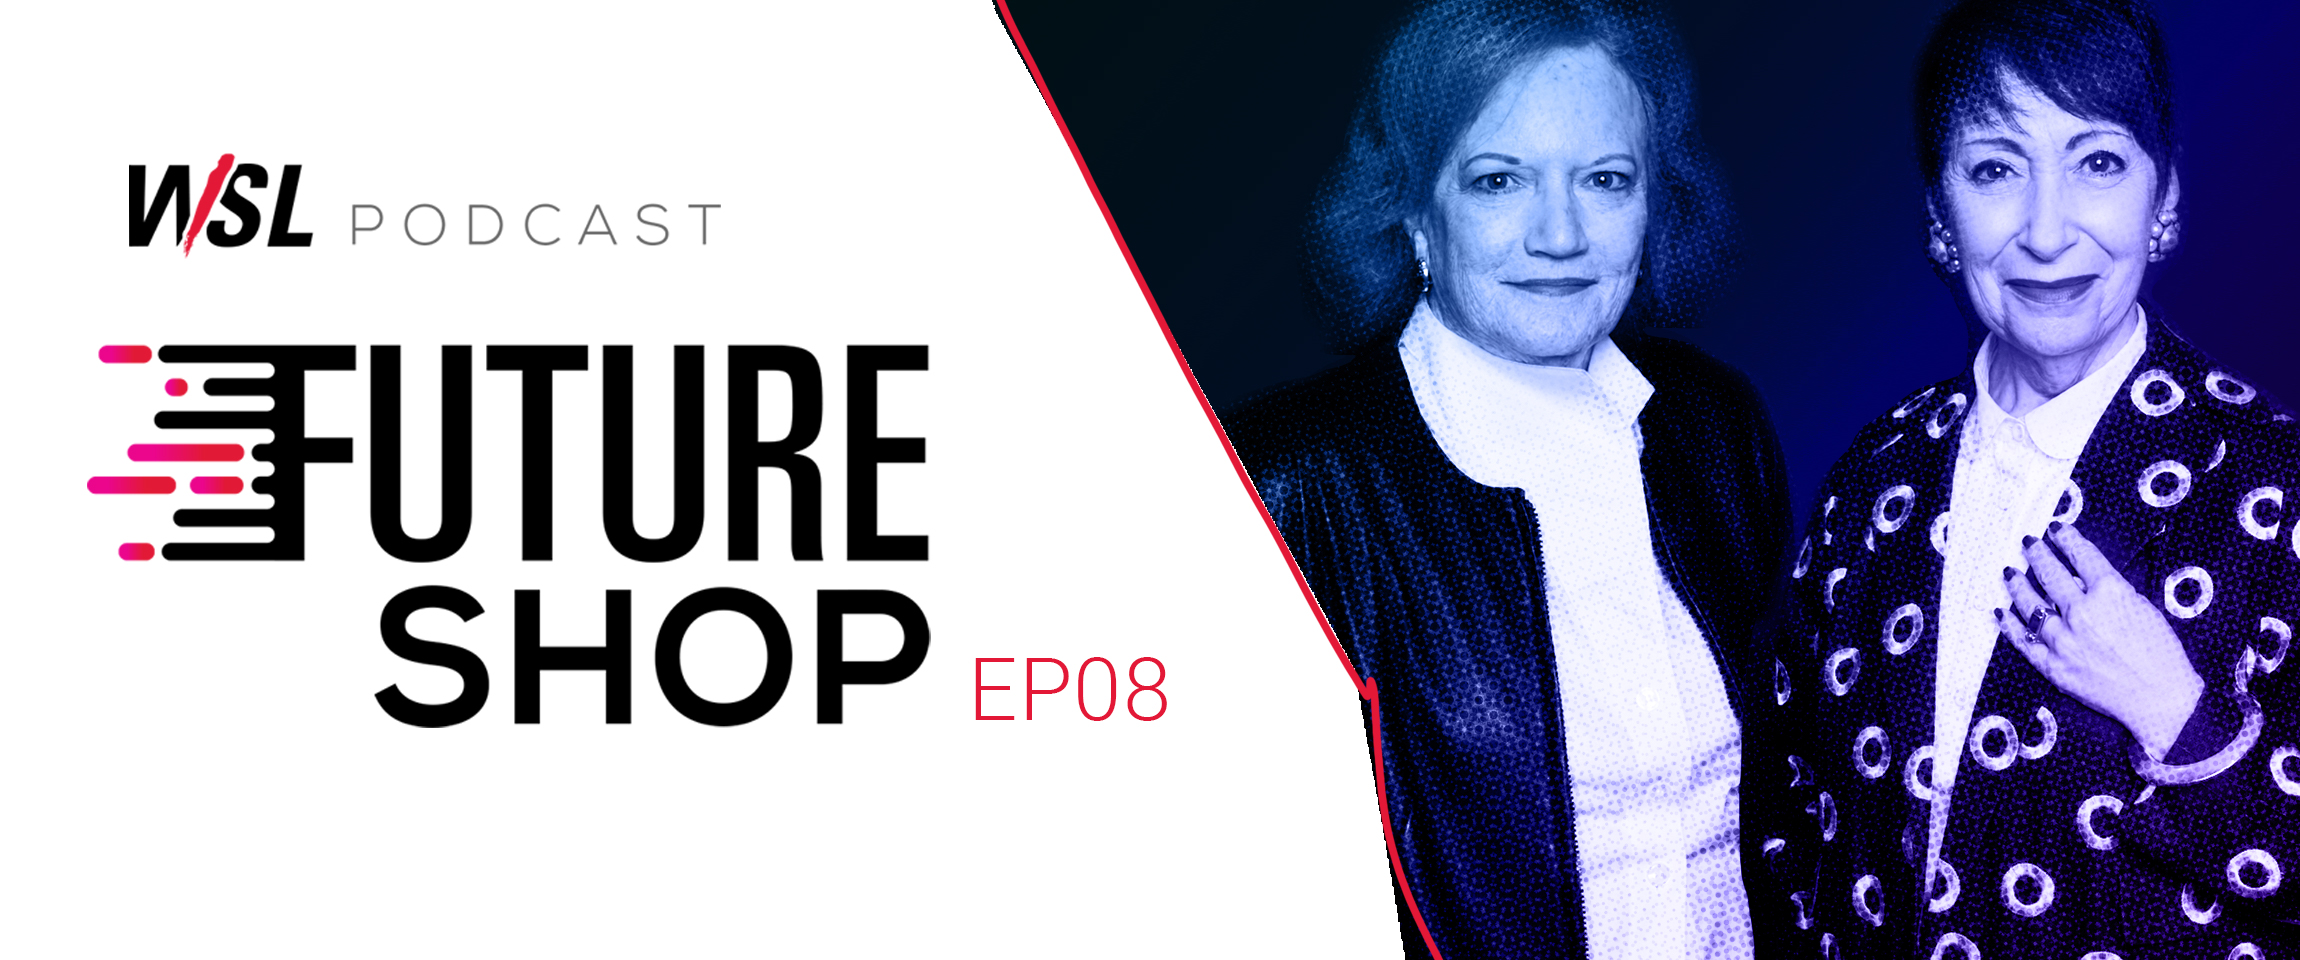 There is No Going Back - Future Shop Podcast EP08